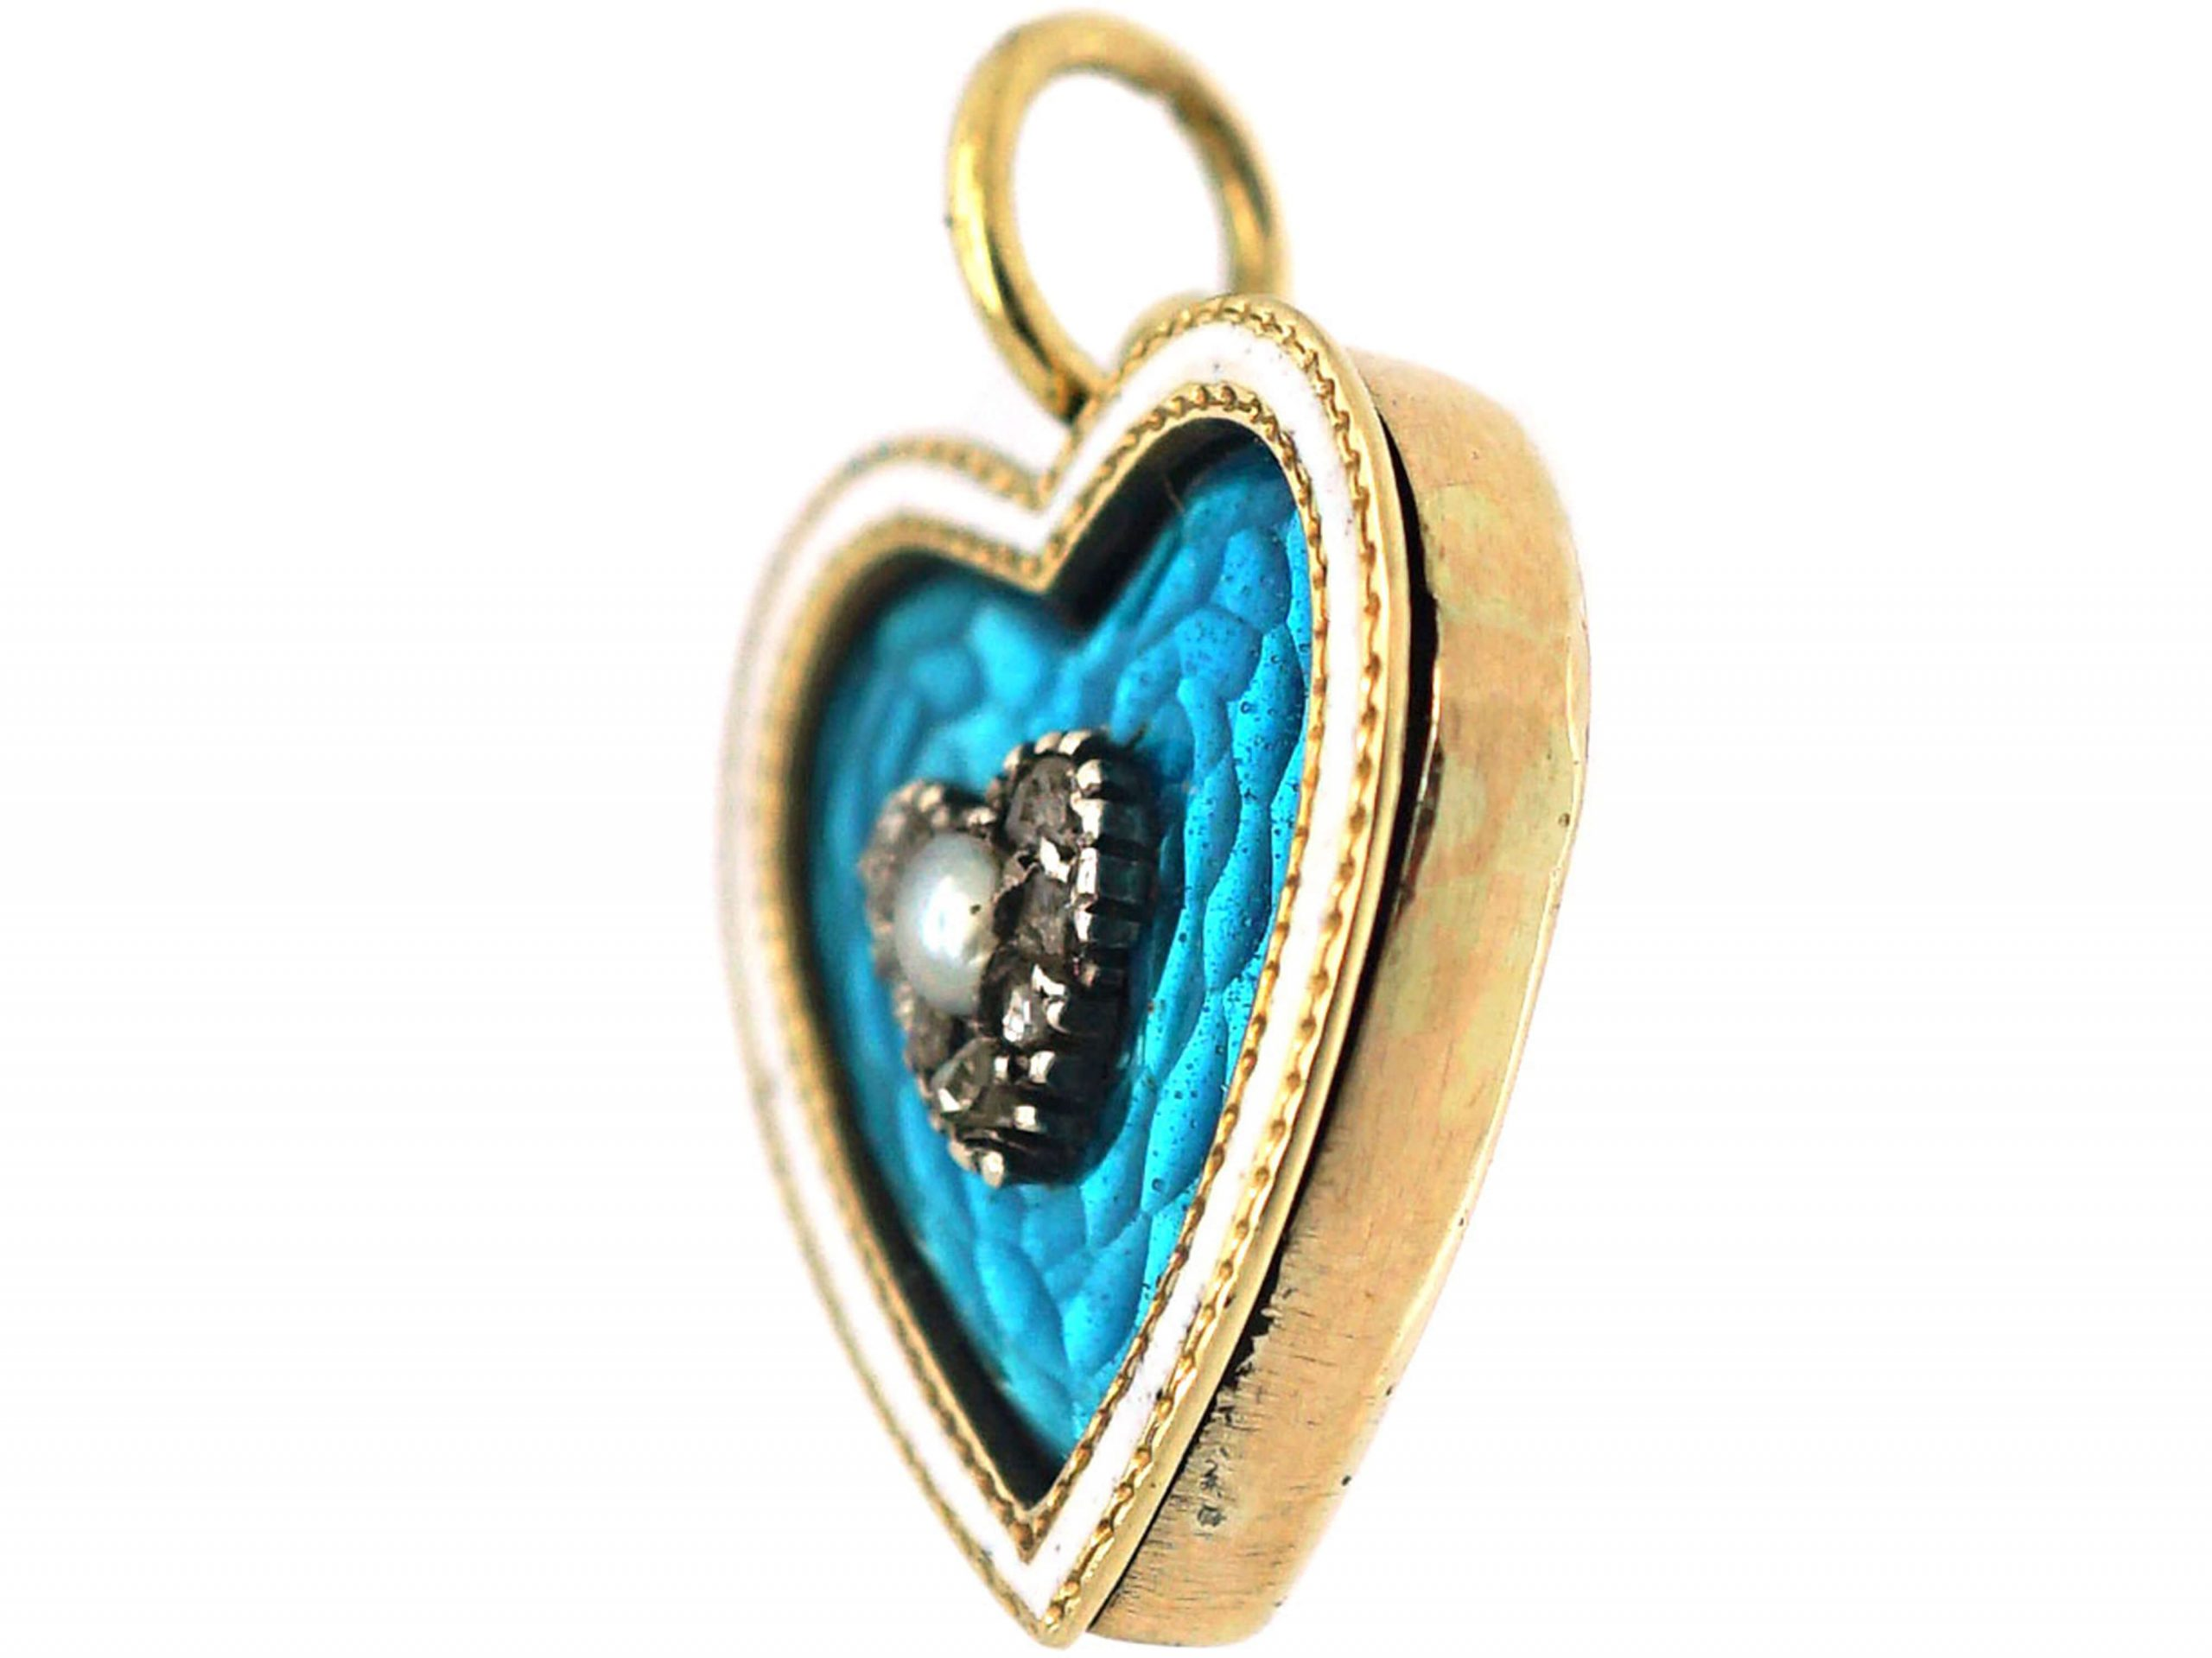 Edwardian 9ct Gold Heart Shaped Pendant with Blue & White Enamel & Rose Diamond & Natural Pearl Heart in the Centre